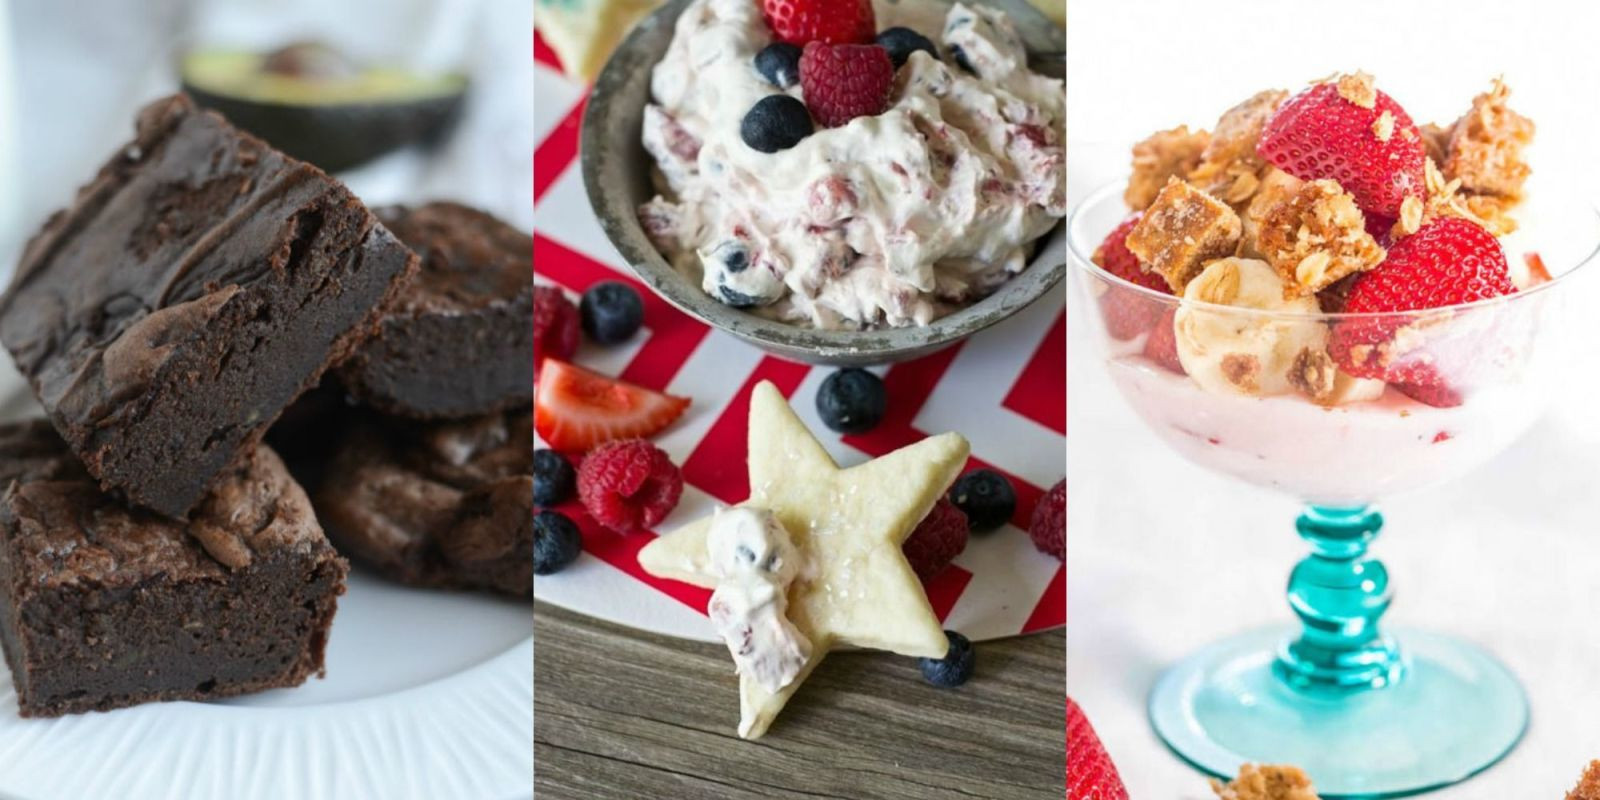 Healthy Desserts For Weight Loss  50 Healthy Desserts That Help You Lose Weight Fast